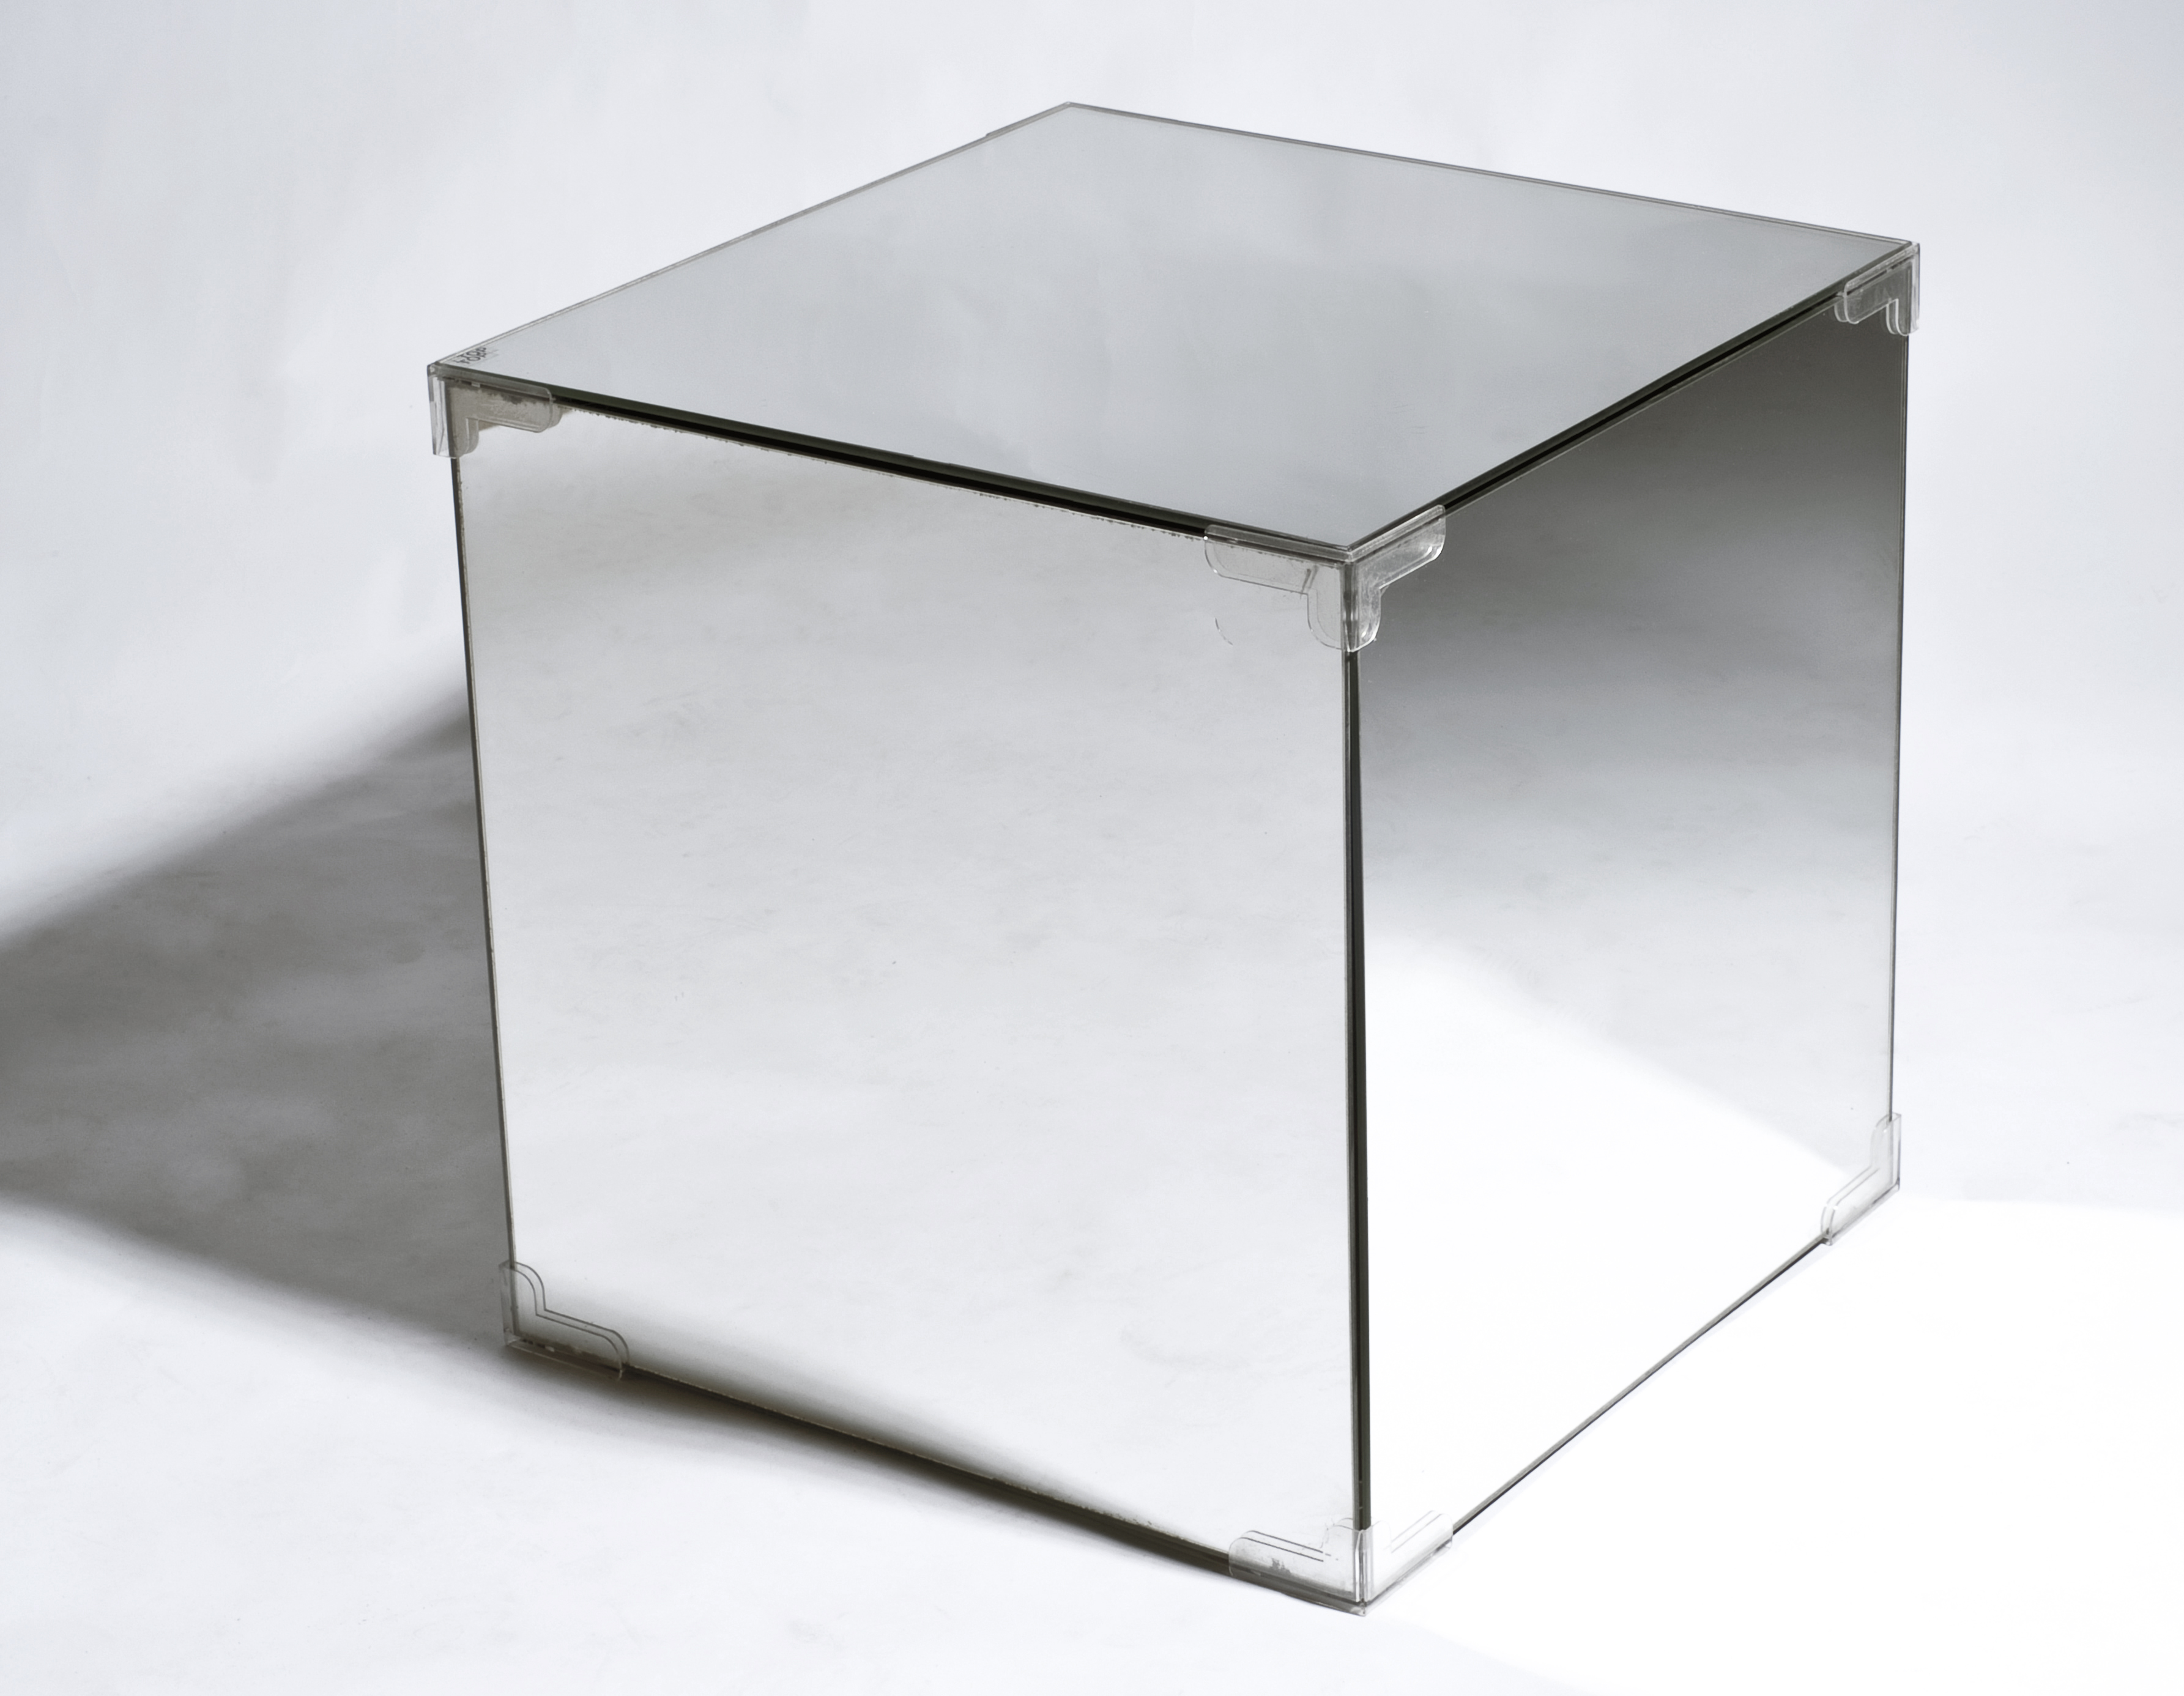 Timeless 1920u0027s Bauhaus Deco Design   Mirrored Side Table Storage Cube   New